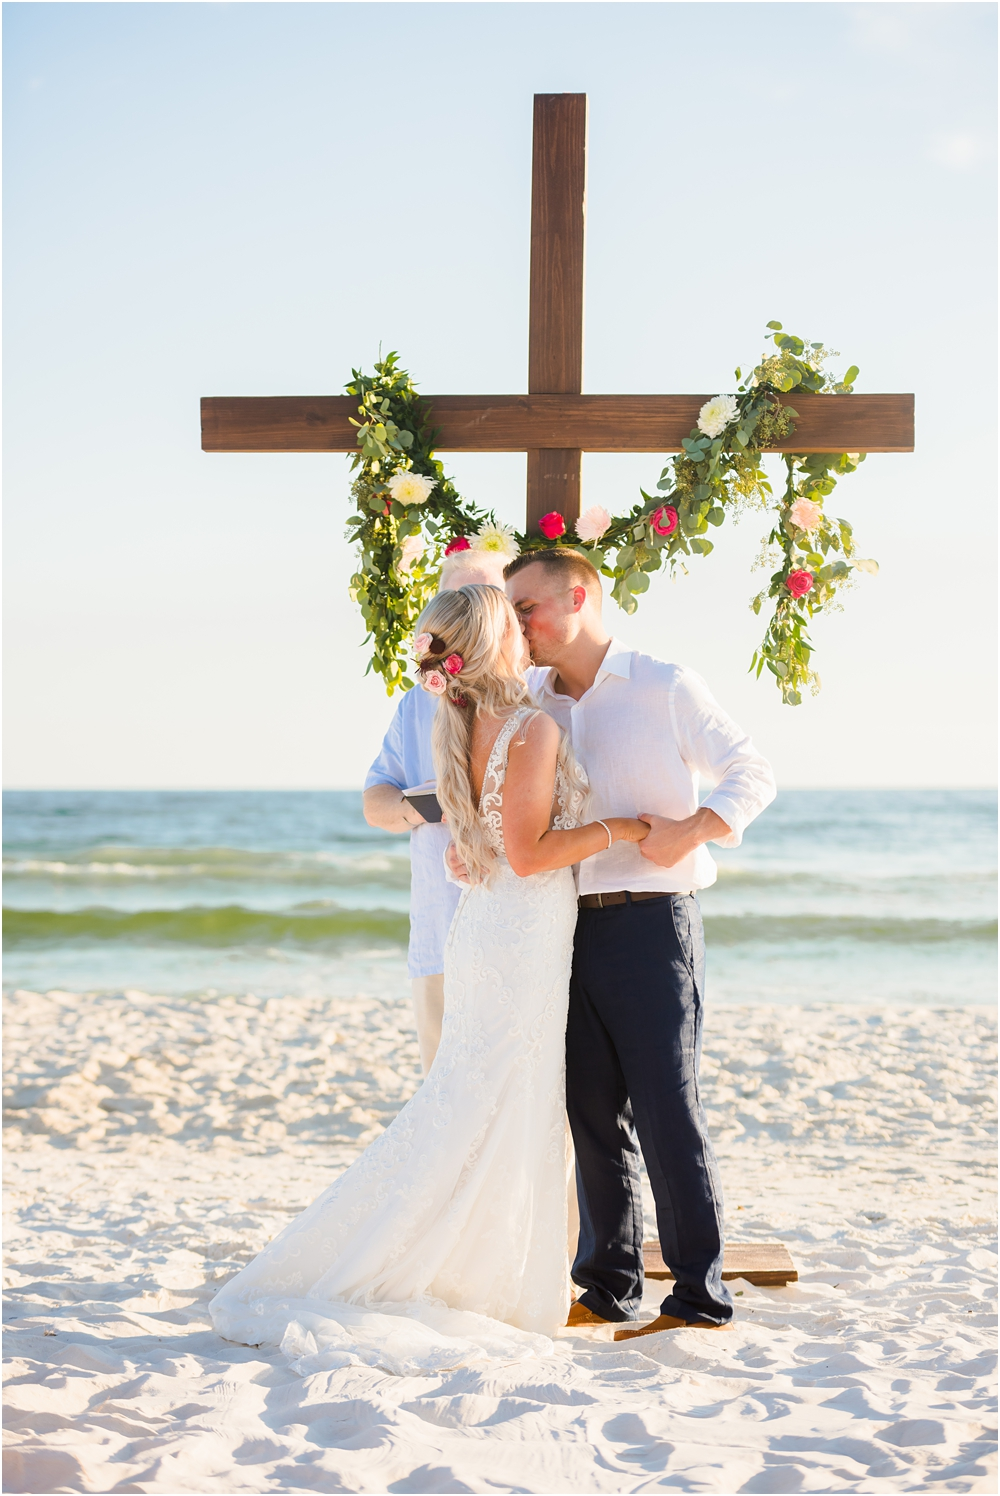 mcglothlin-wedding-kiersten-stevenson-photography-30a-panama-city-beach-dothan-tallahassee-(90-of-145).jpg